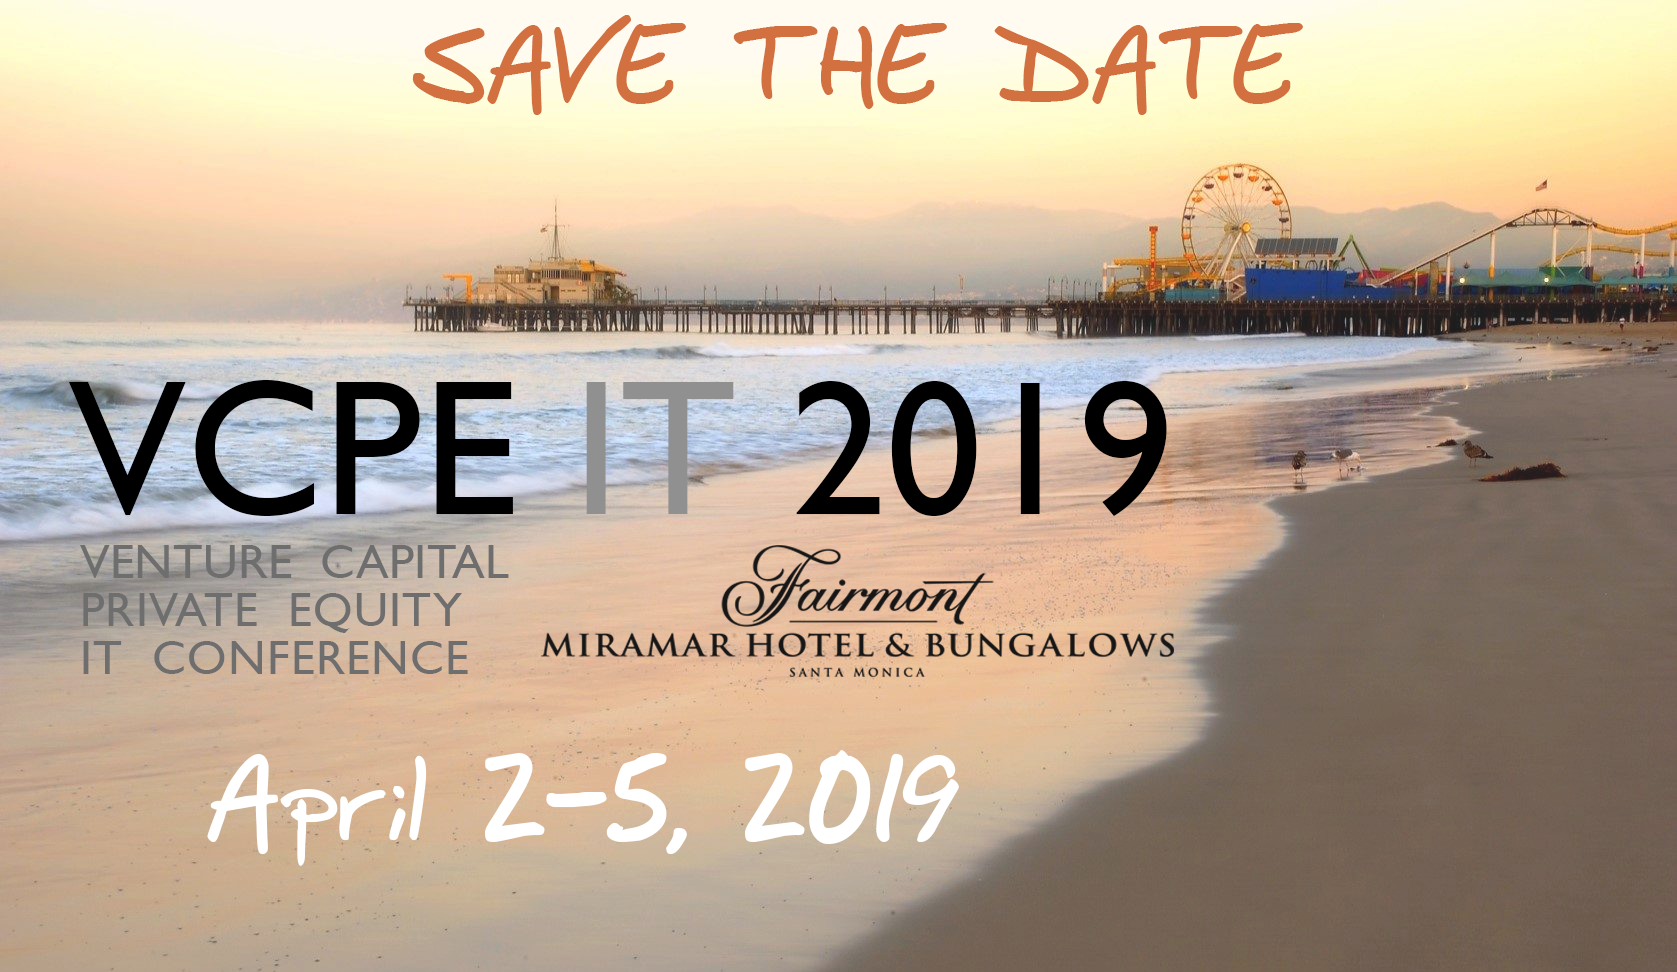 VCPEIT 2019 Save the Date NEW.png